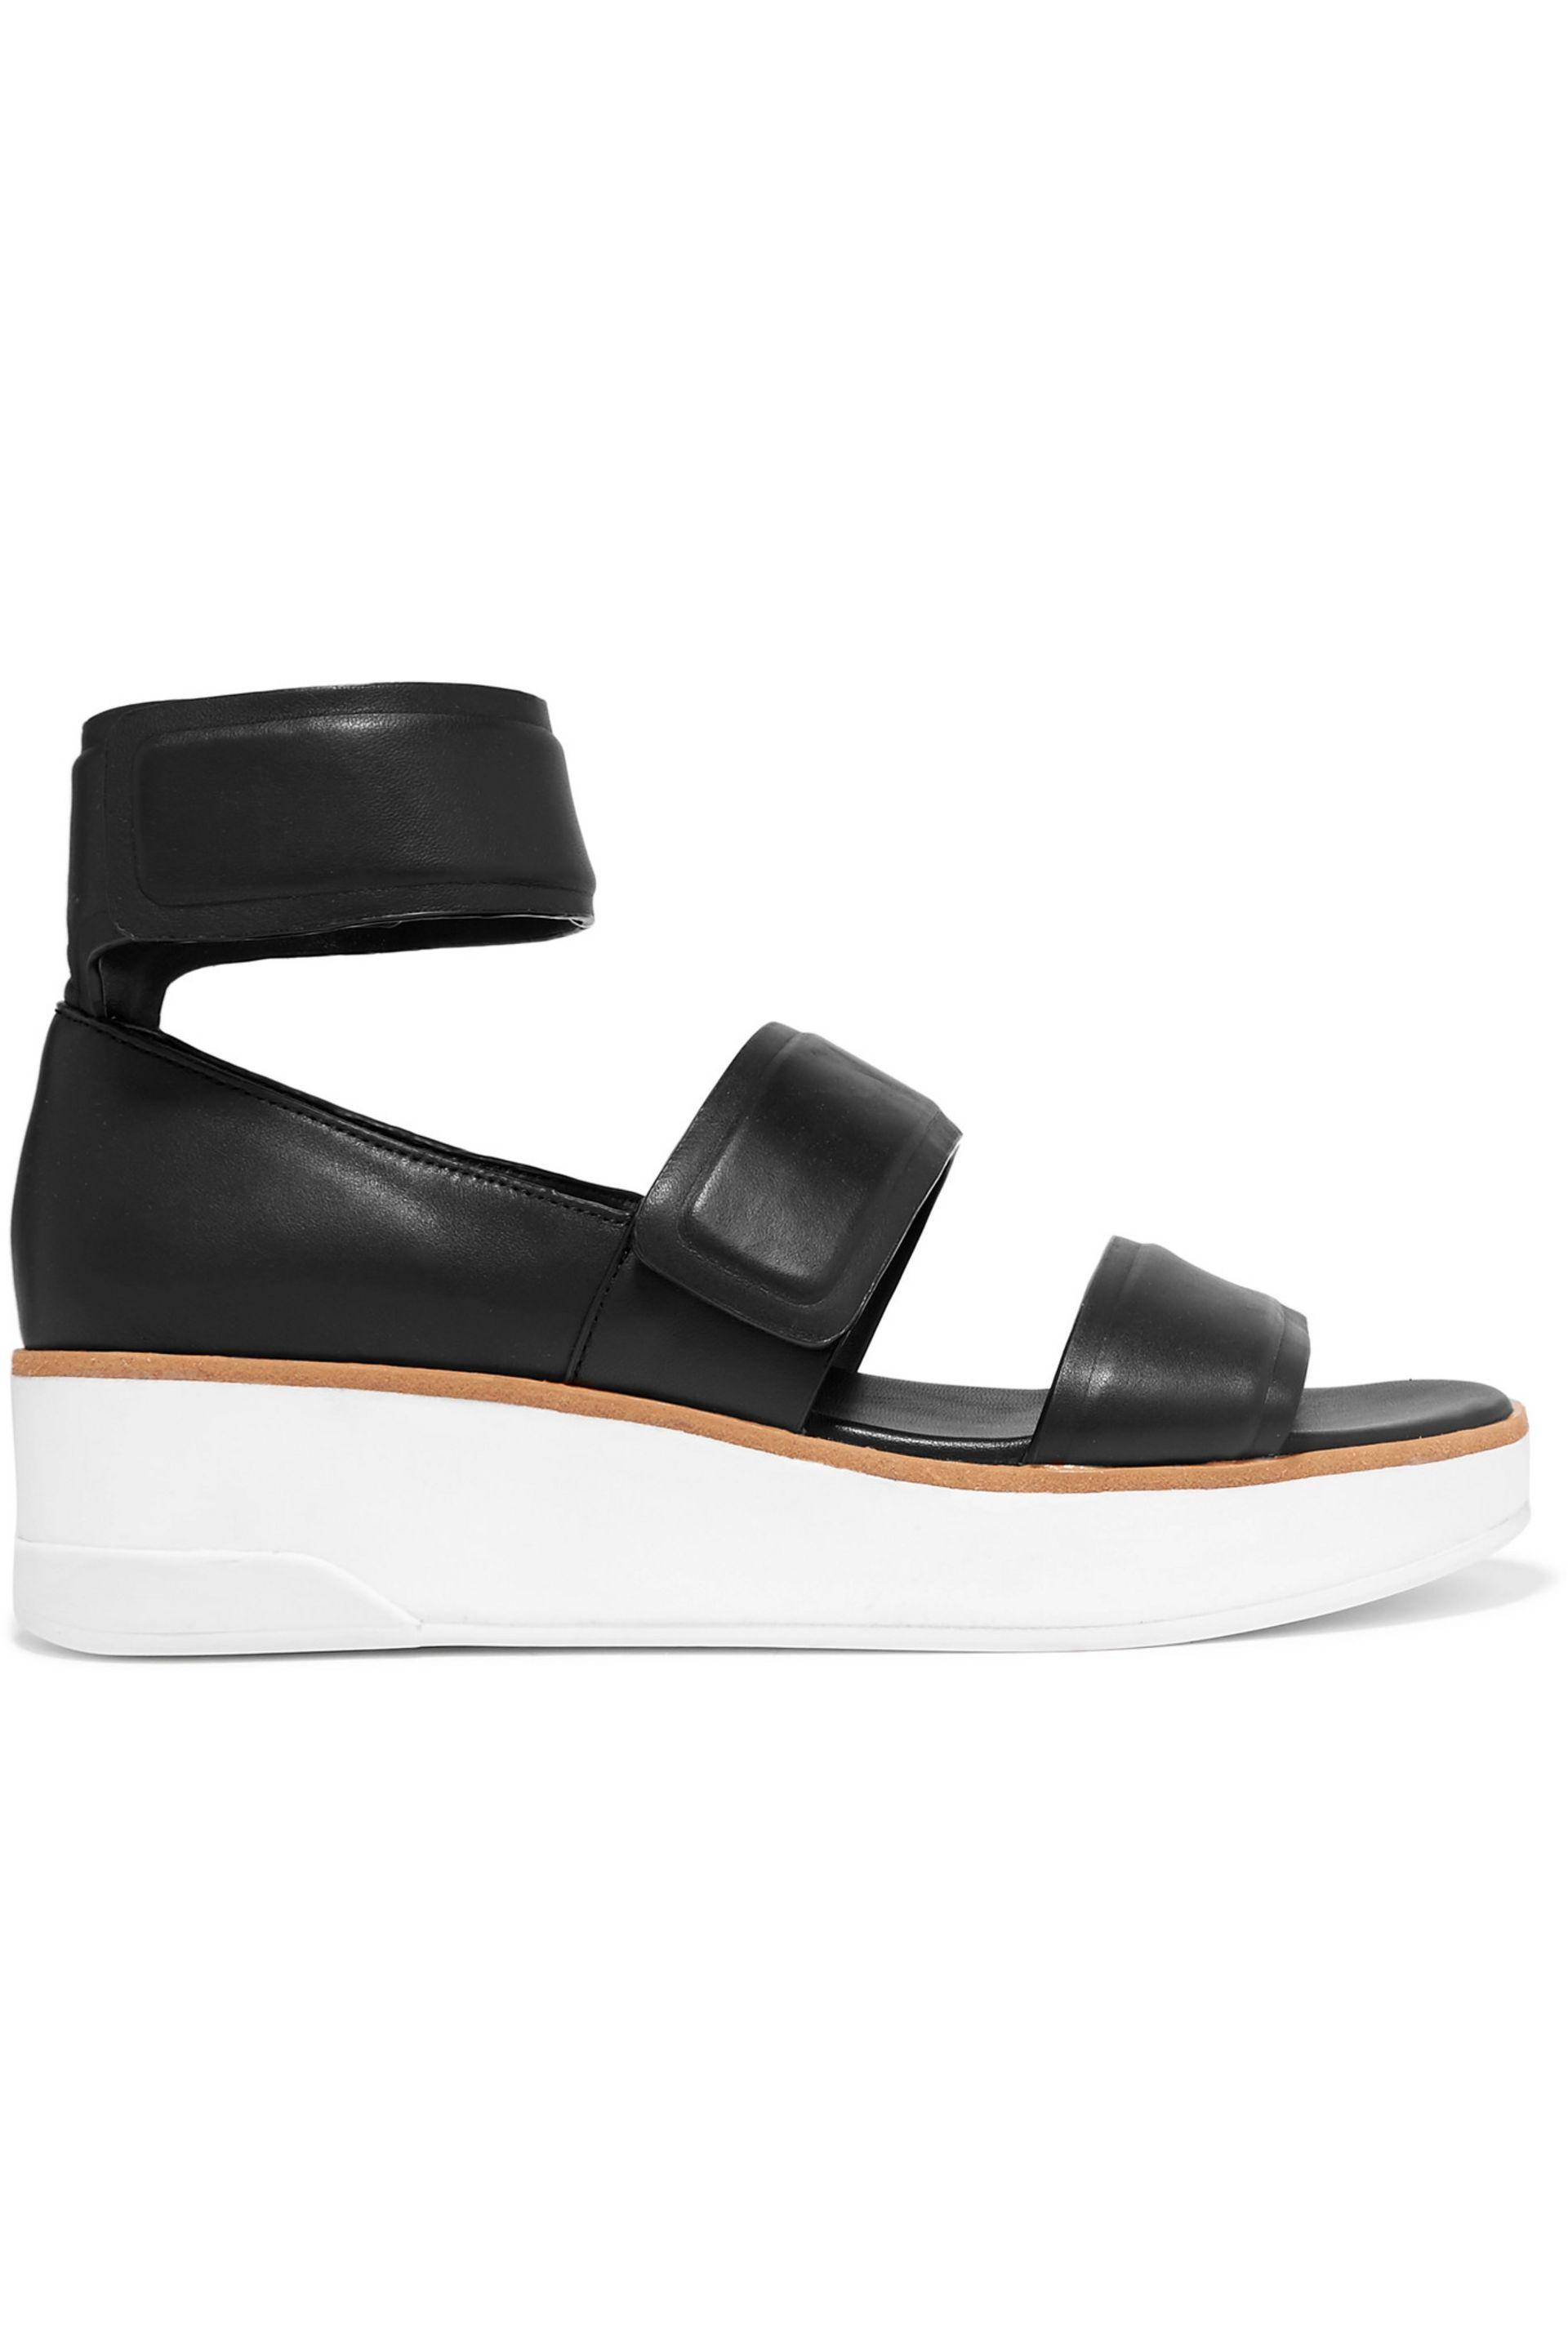 1b382a89d5e Dkny Leather Sandals in Black - Lyst